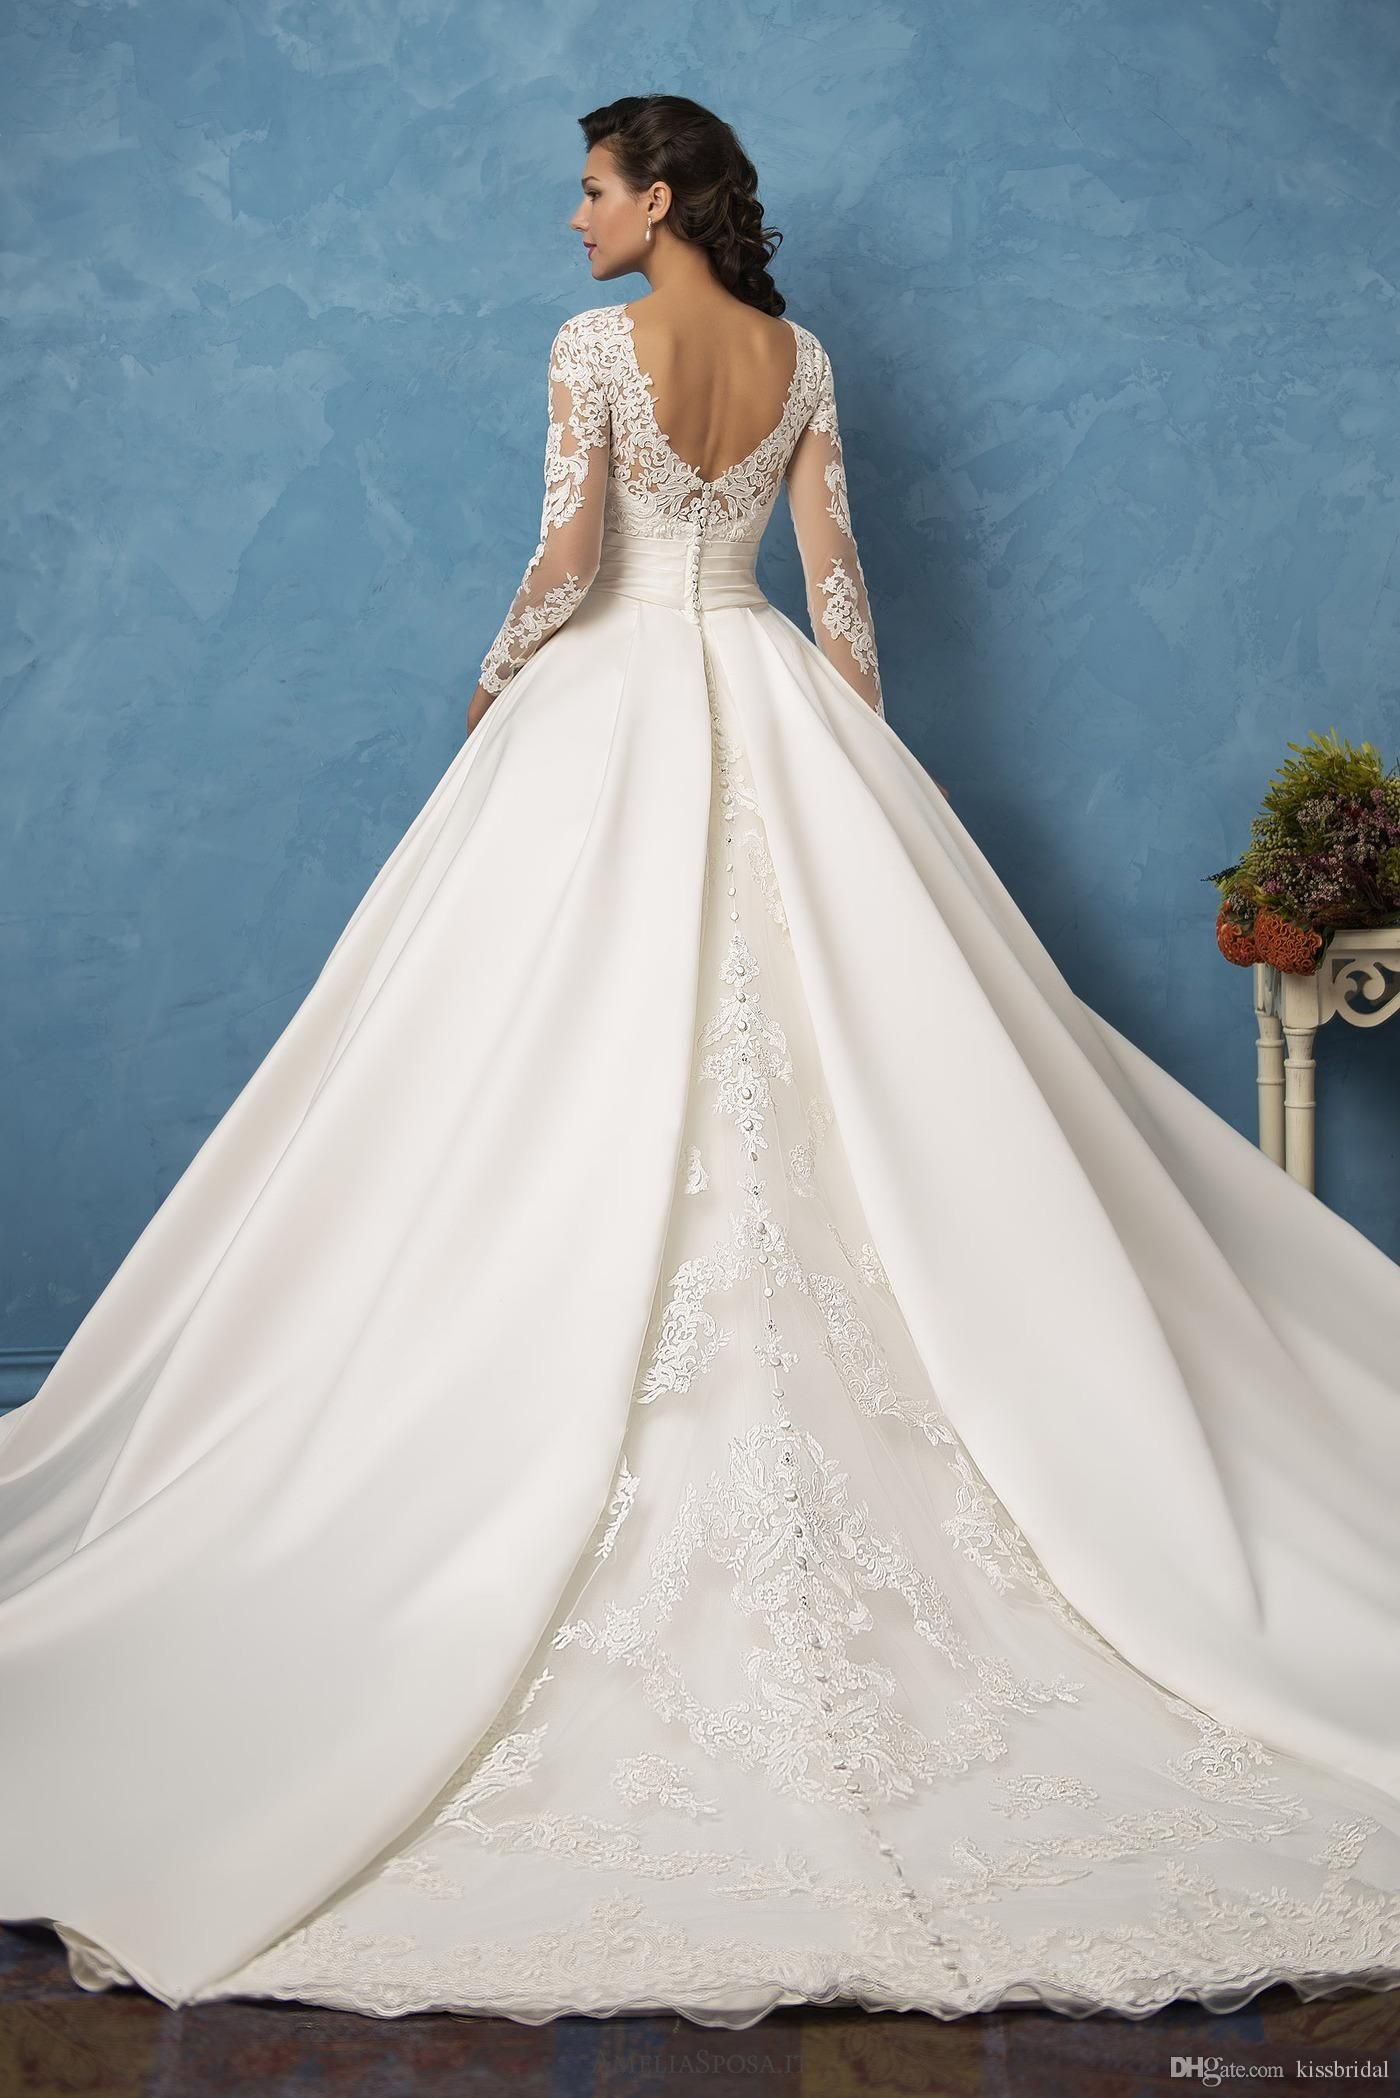 34++ Satin wedding dress with long sleeves information